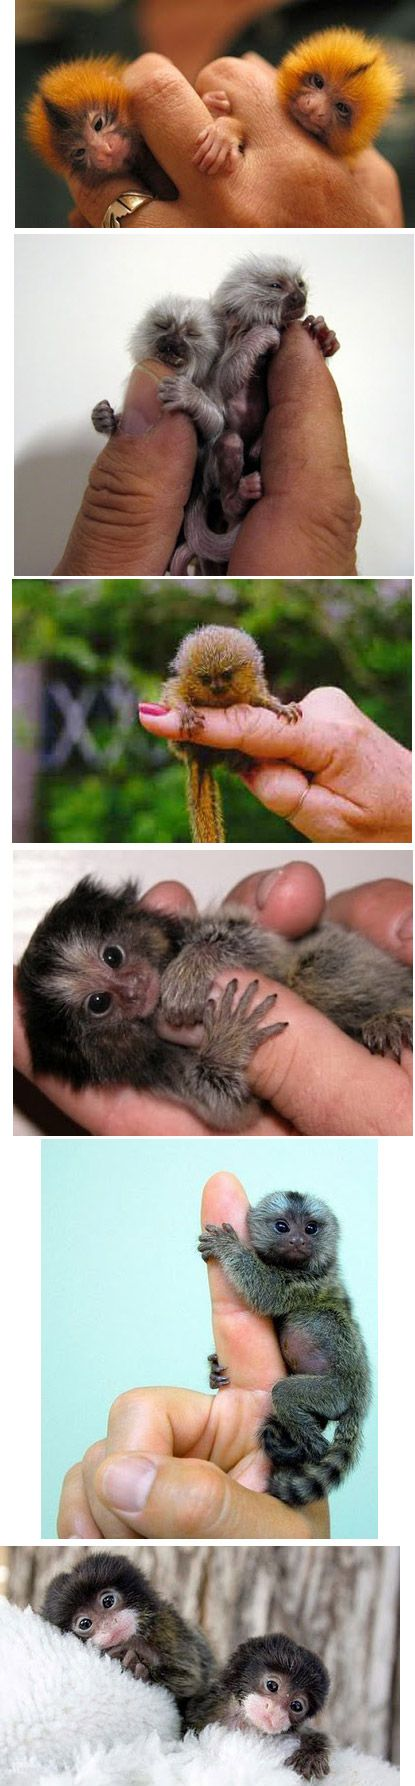 OMFG HOW ARE THESE REAL? @Jennykerfoot...watch out, they'll eat your face!!!  Finger Monkeys from The Rain Forest... One of the cutest things on the planet!